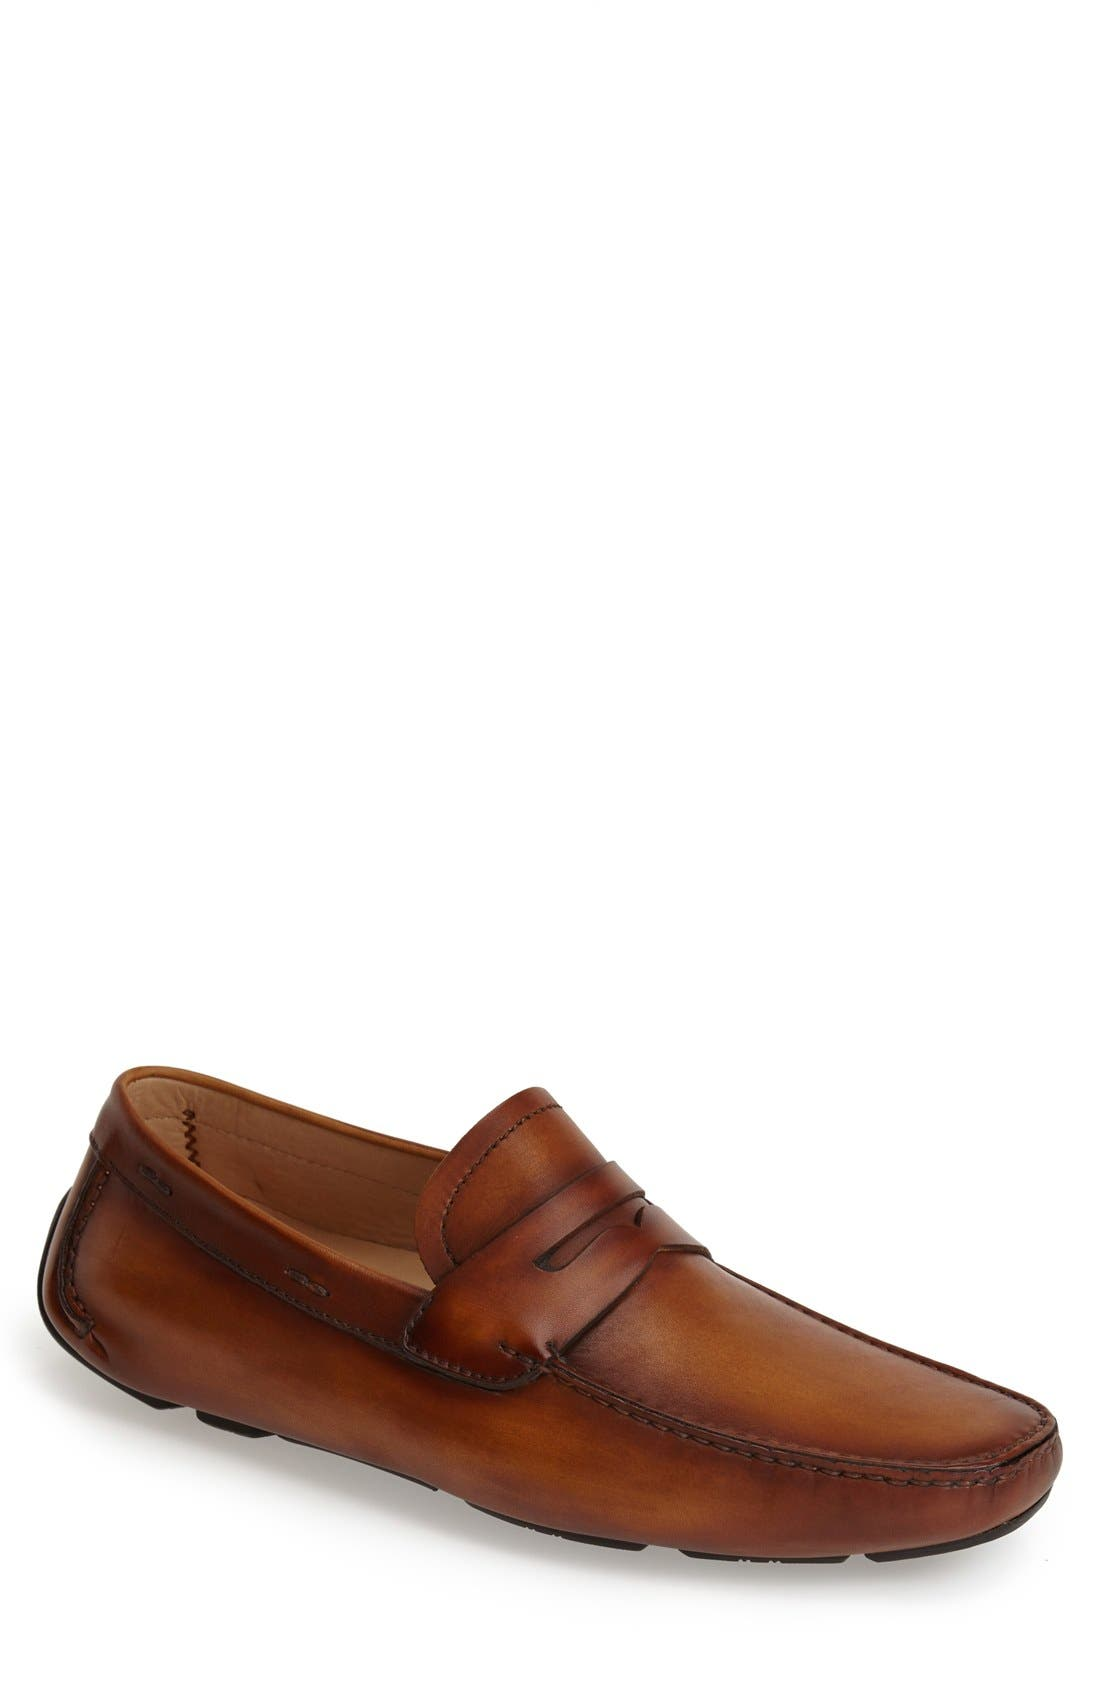 'Dylan' Leather Driving Shoe,                             Main thumbnail 1, color,                             Cognac Leather